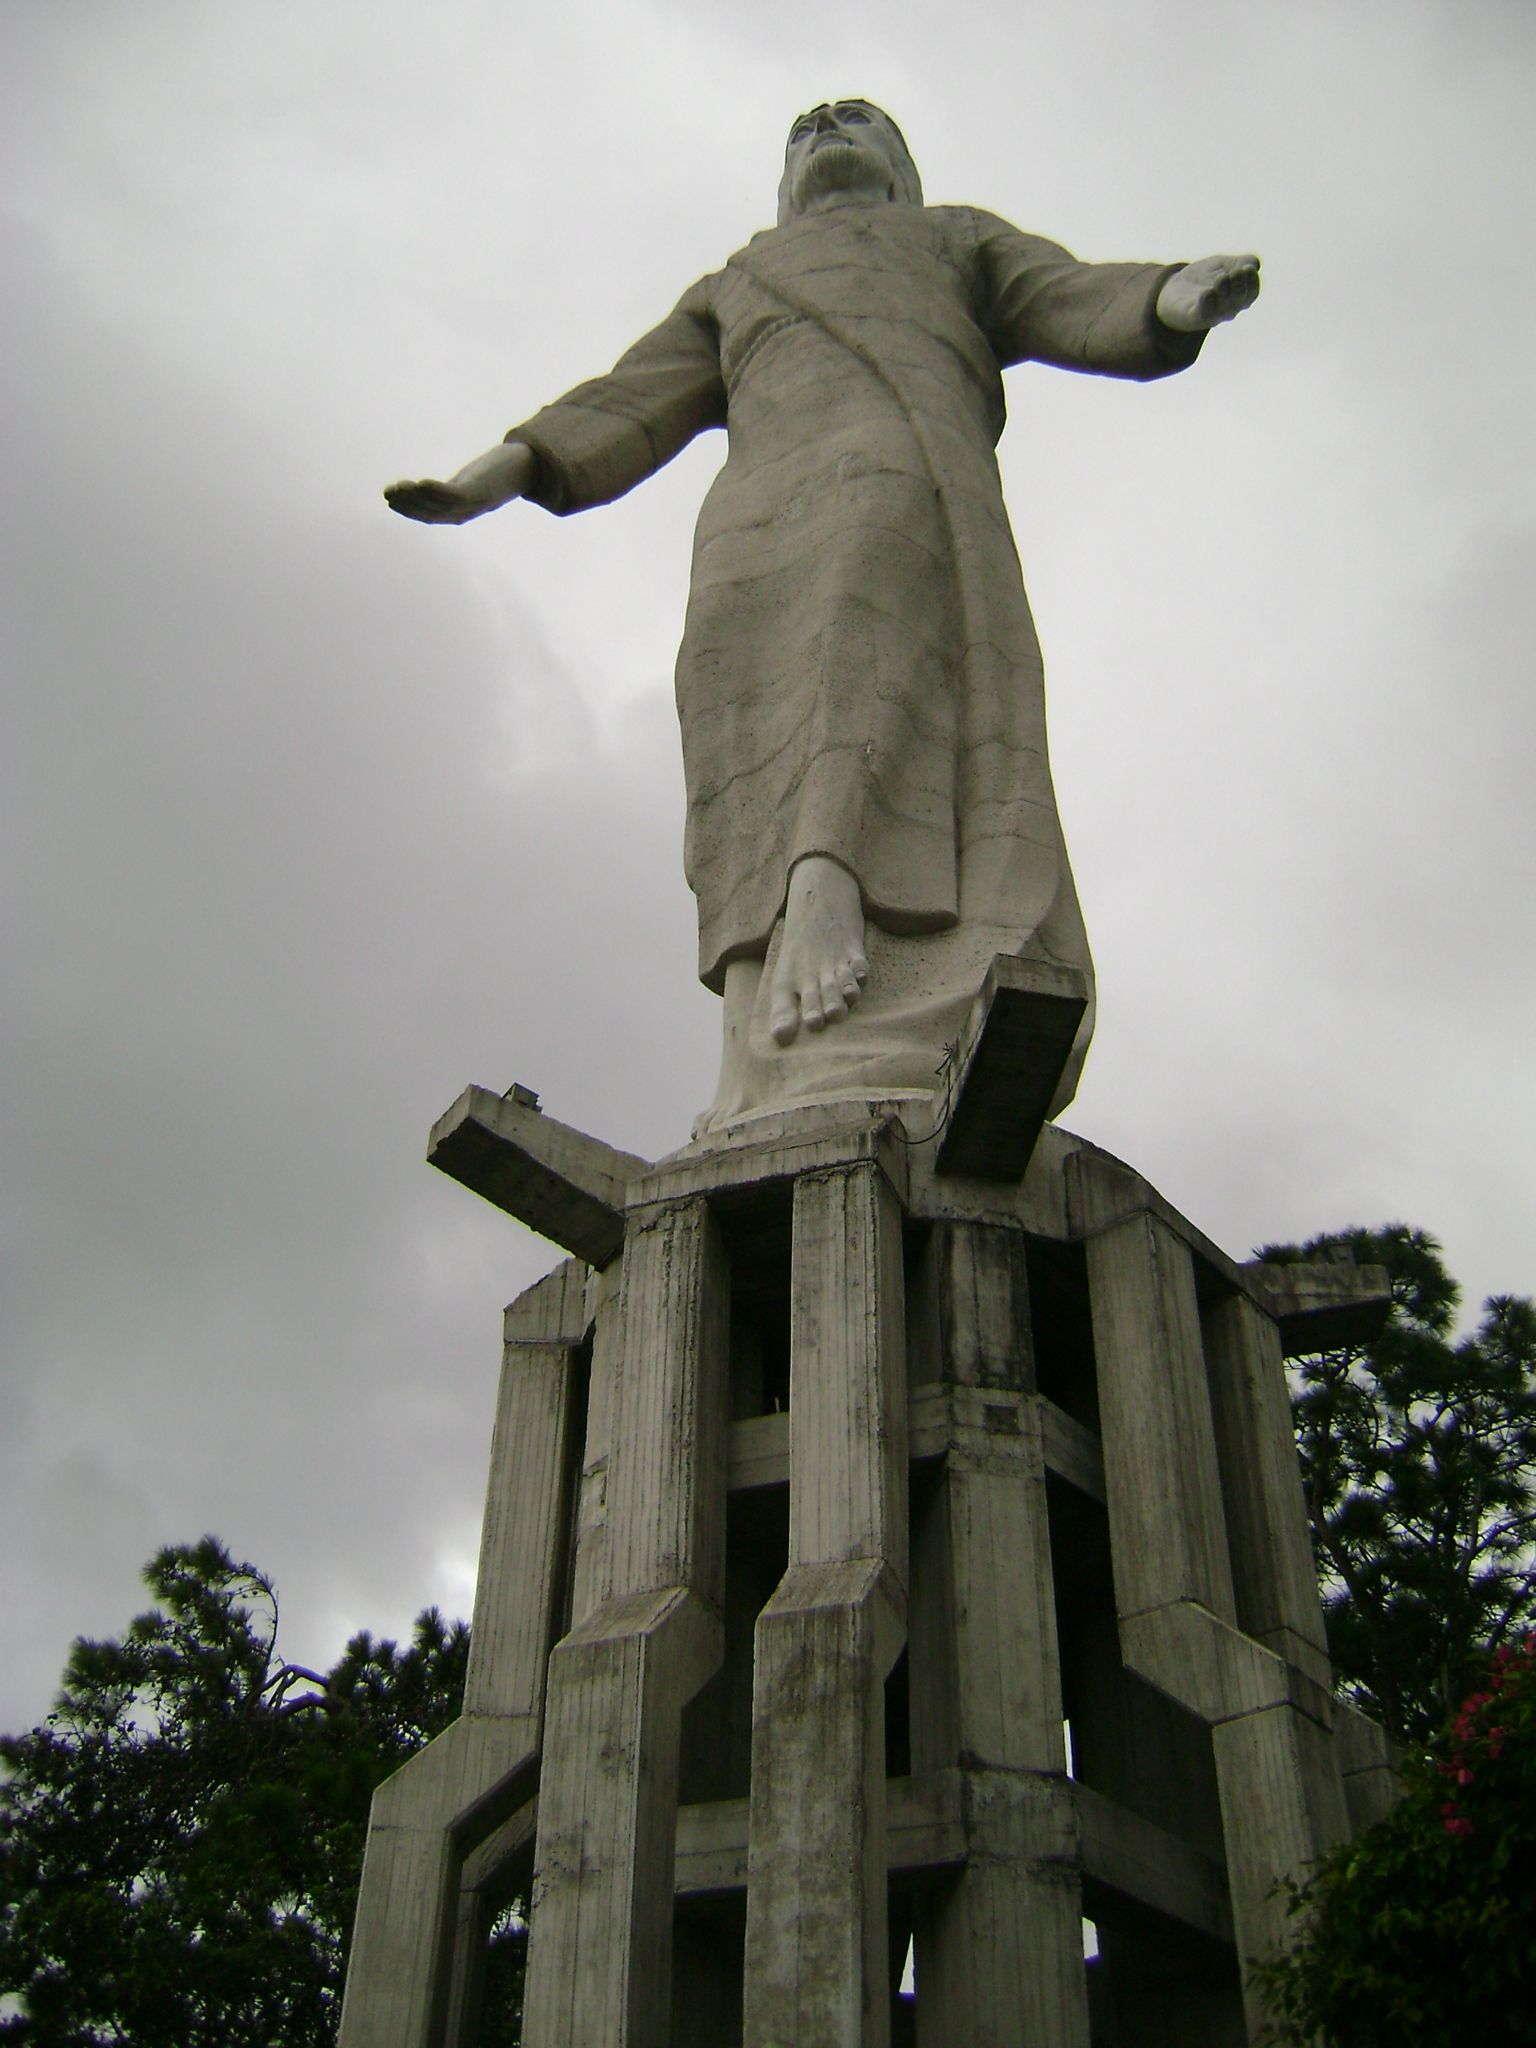 most famous statue at the top on the mountain in honduras jesus